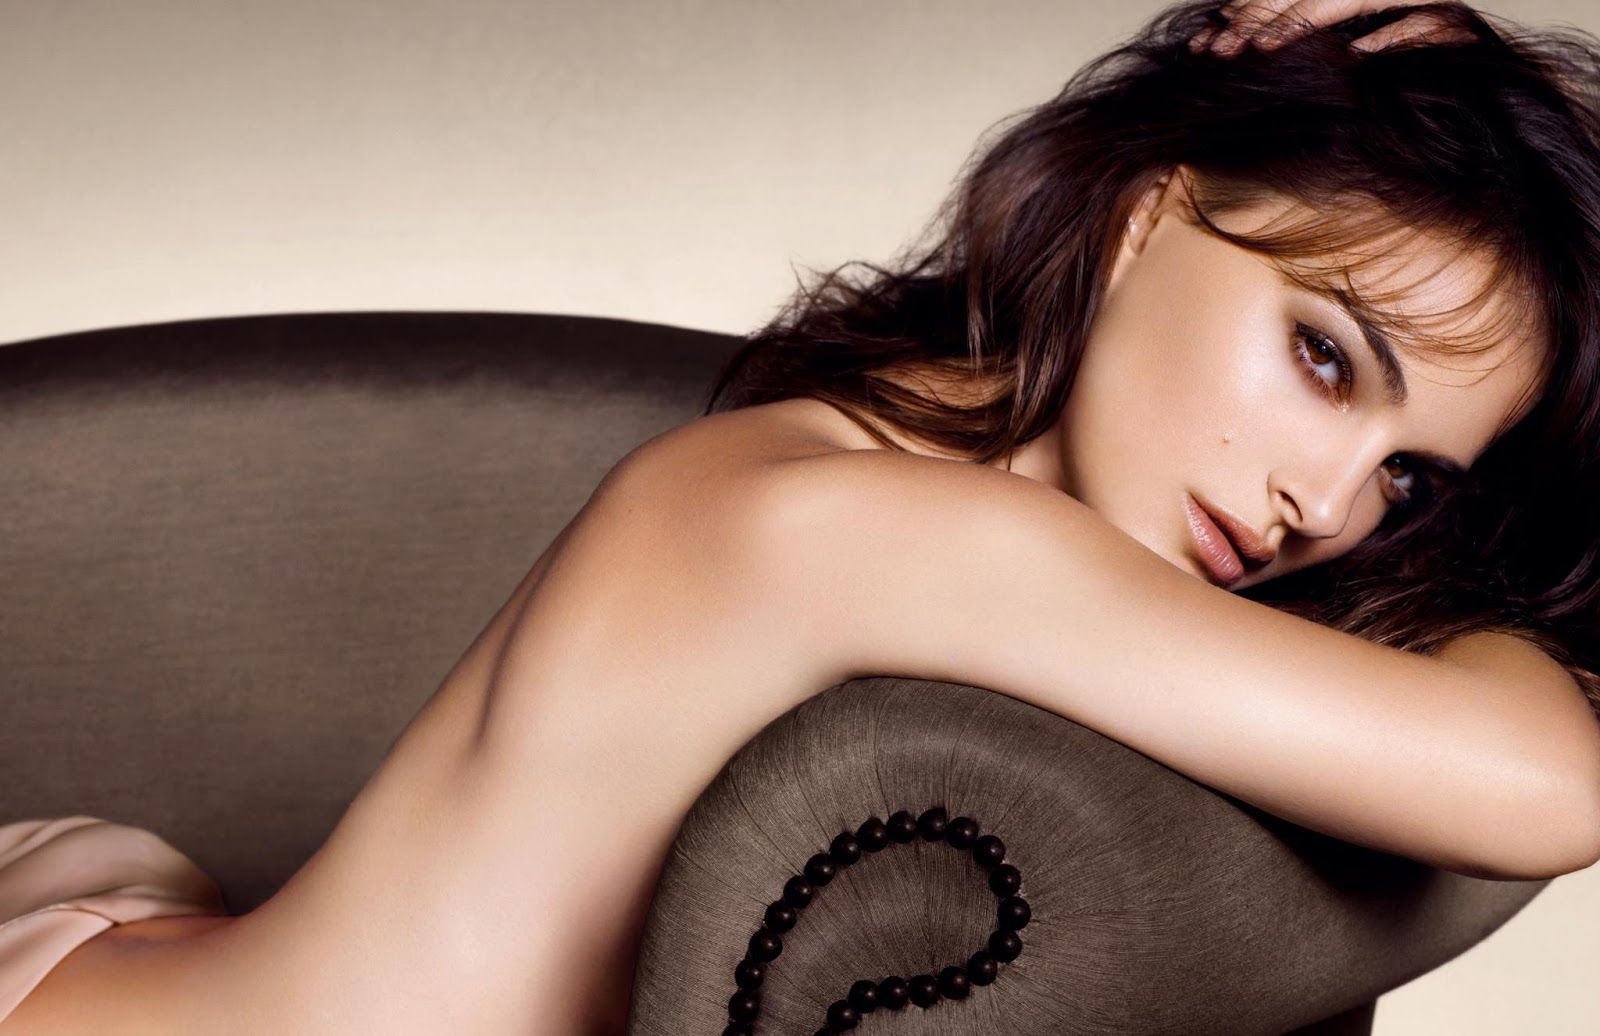 10 Celebrities Who Have A Perfect Image - Natalie Portman